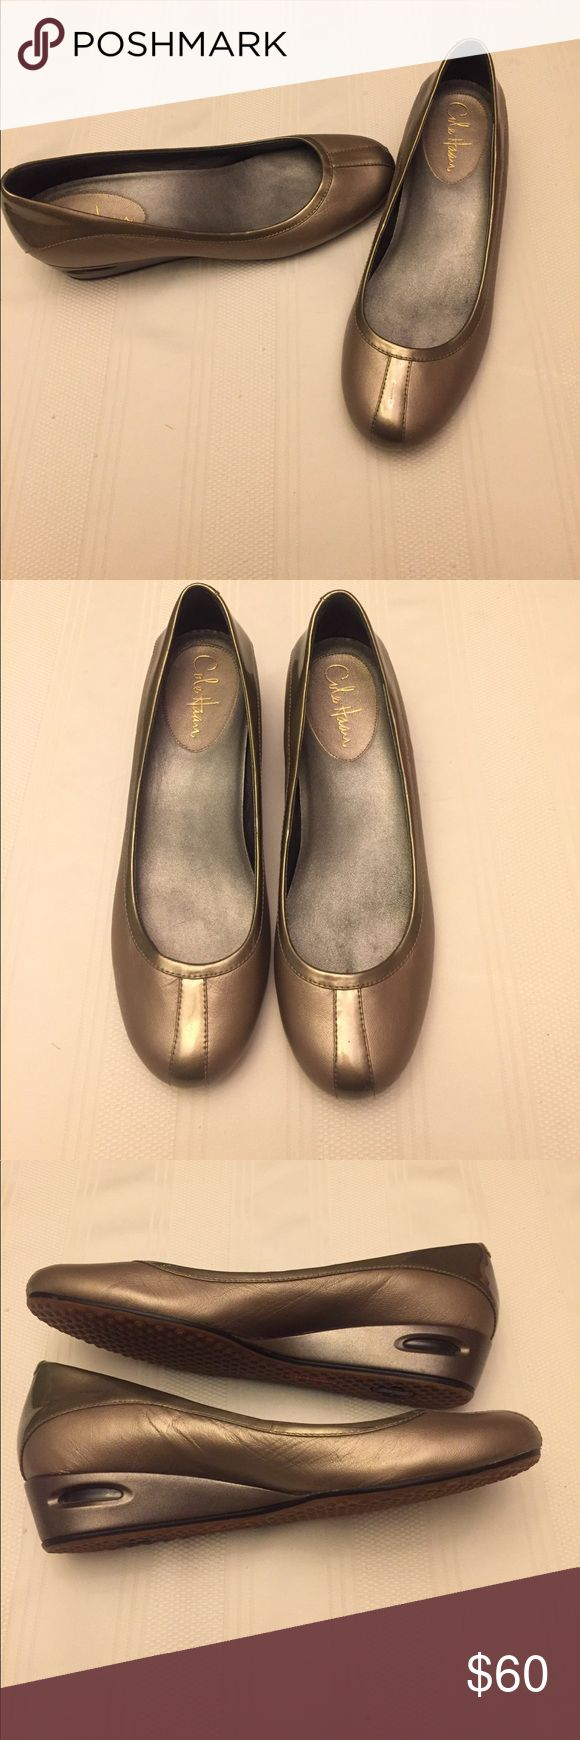 Cole Haan Air Bria Metallic ballet wedge like new! Adorable and comfortable. These Cole Haan Air Bria ballet wedges are practically new. No signs of wear. They are a shiny metallic gold. Cole Haan Shoes Wedges